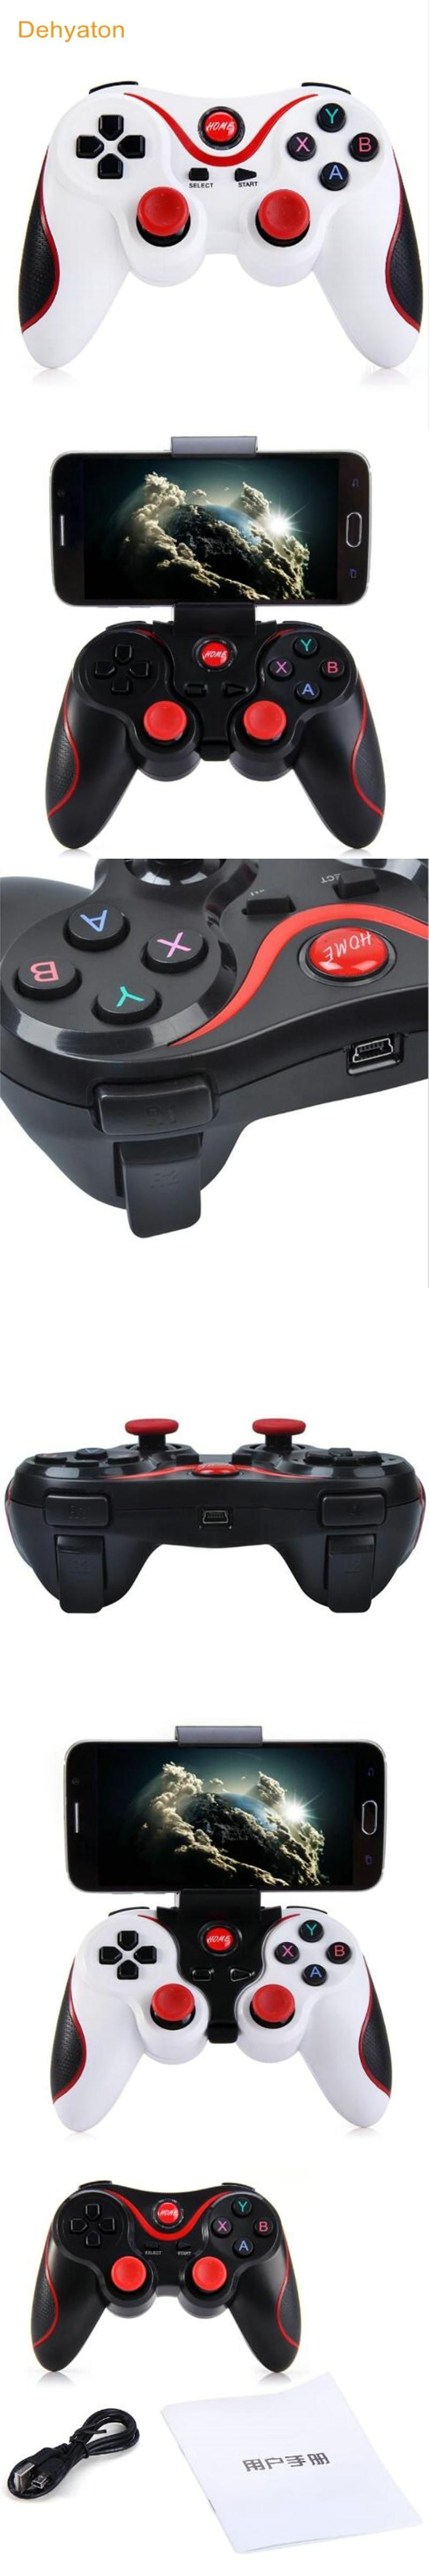 Dehyaton T3 Android Wireless Bluetooth Gamepad Gaming Remote Joystick It For Smartphone Pad Tab Controller Bt 30 Tablet